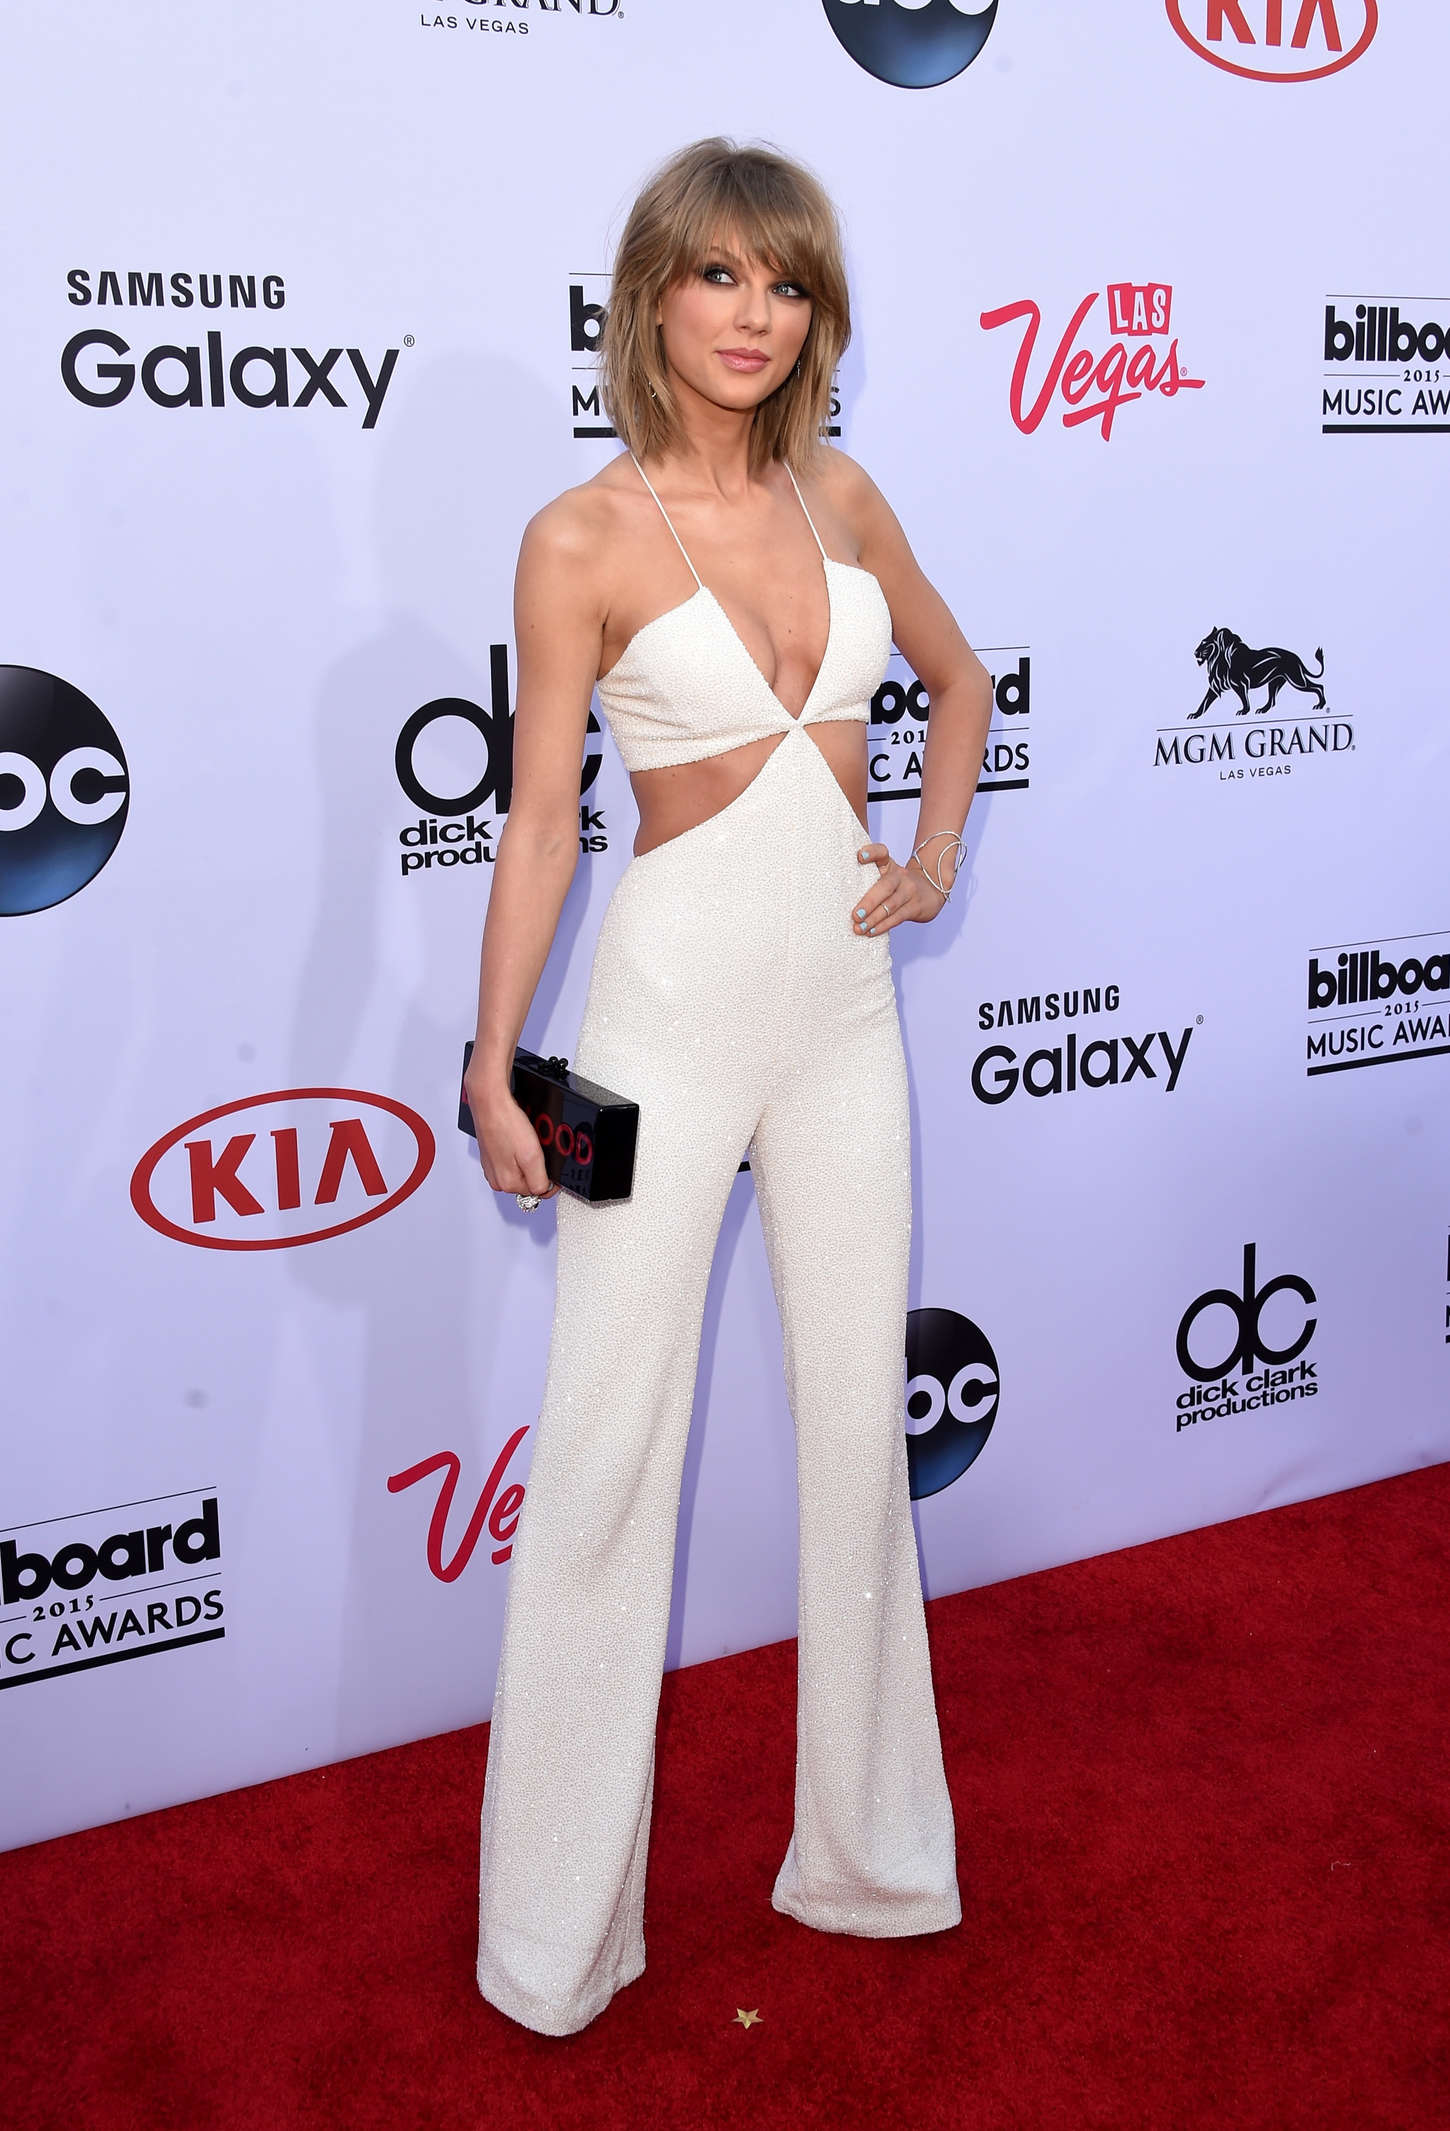 Taylor Swfit 2015 : Taylor Swift : Billboard Music Awards 2015 -10